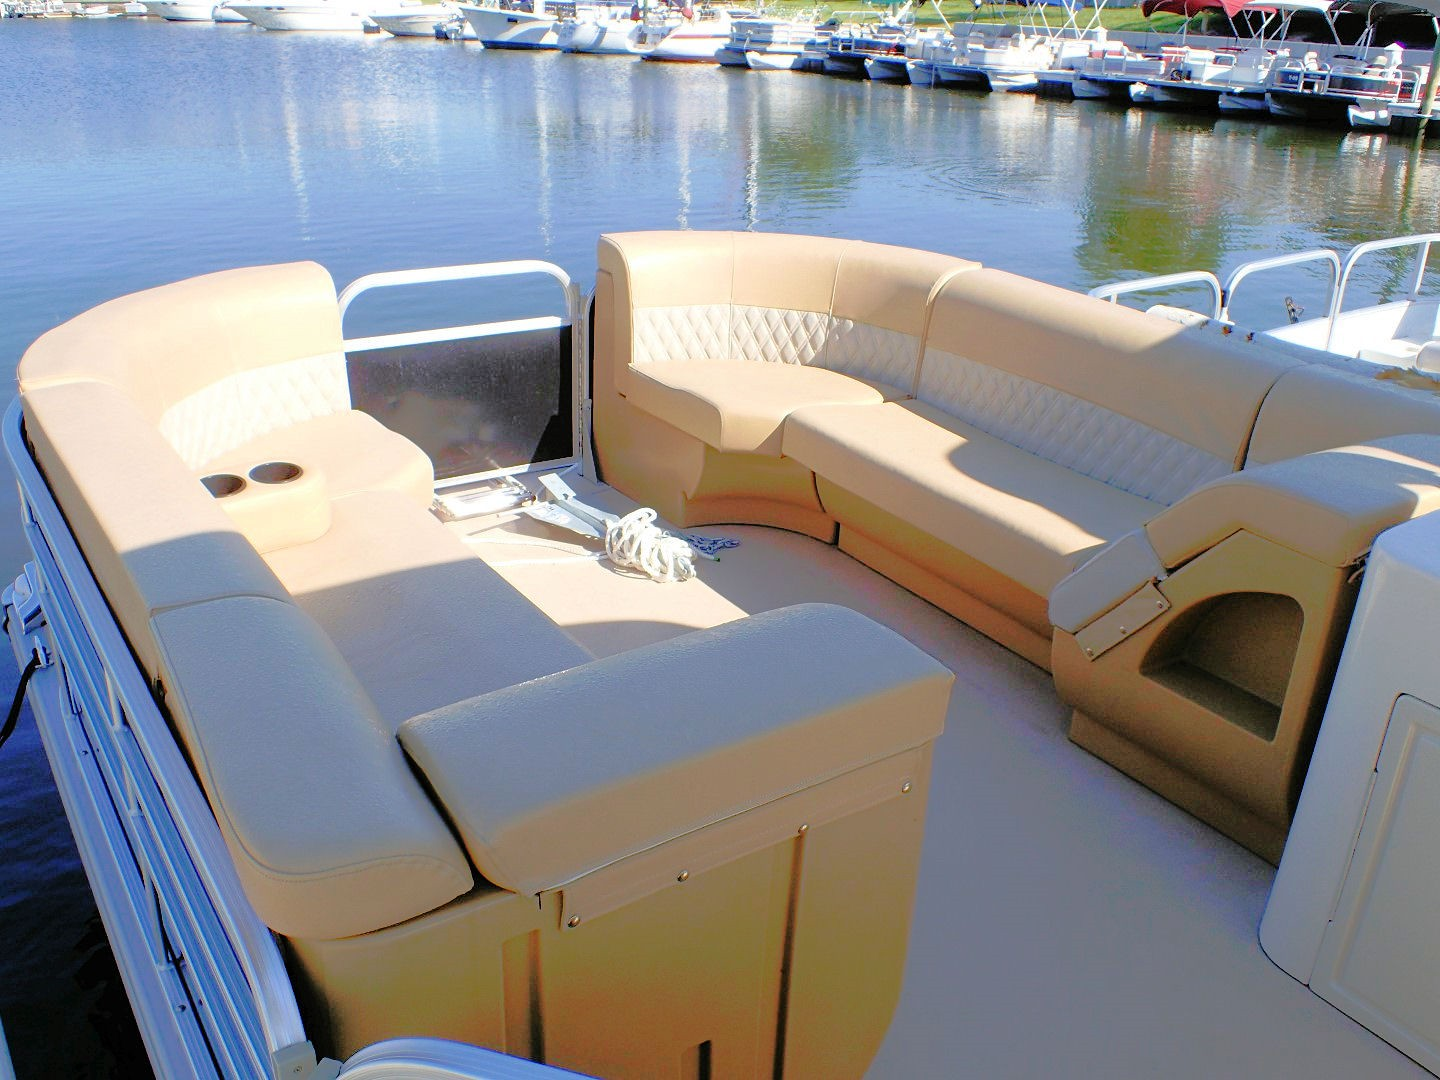 Enjoyable 22 Foot Premium Party Barge Pontoon Boat Rental Picture Alphanode Cool Chair Designs And Ideas Alphanodeonline